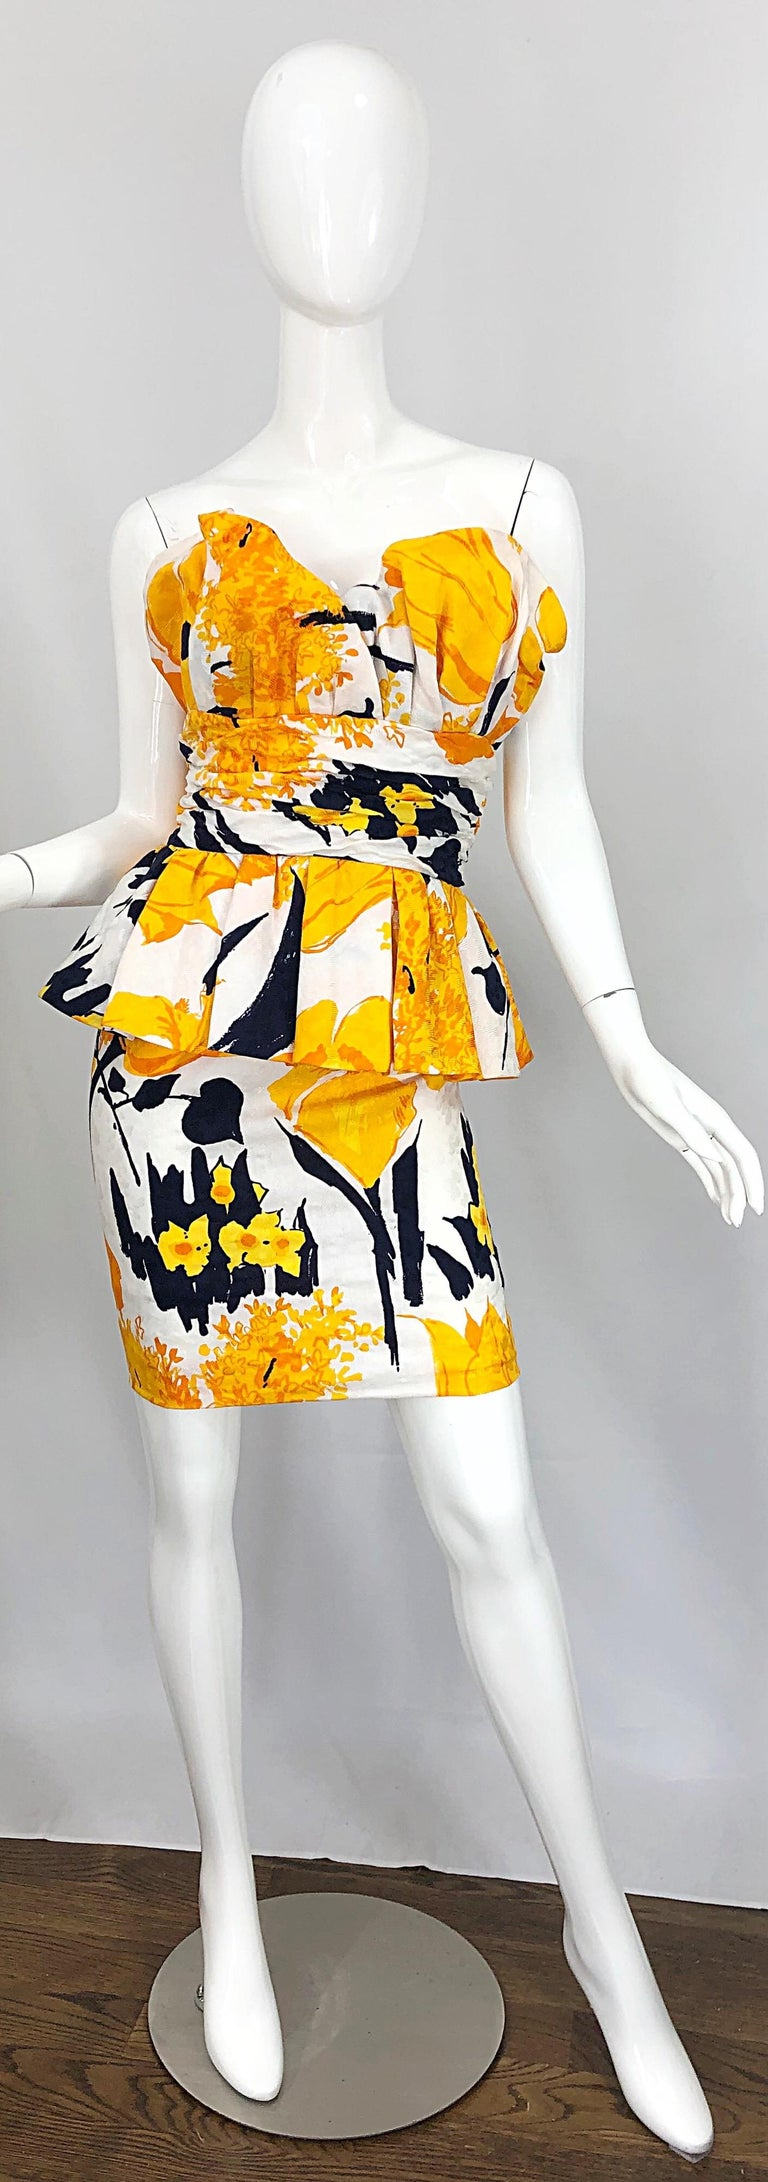 Avant Garde 1980s Amen Wardy Abstract Flower Print Vintage 80s Strapless Dress For Sale 10